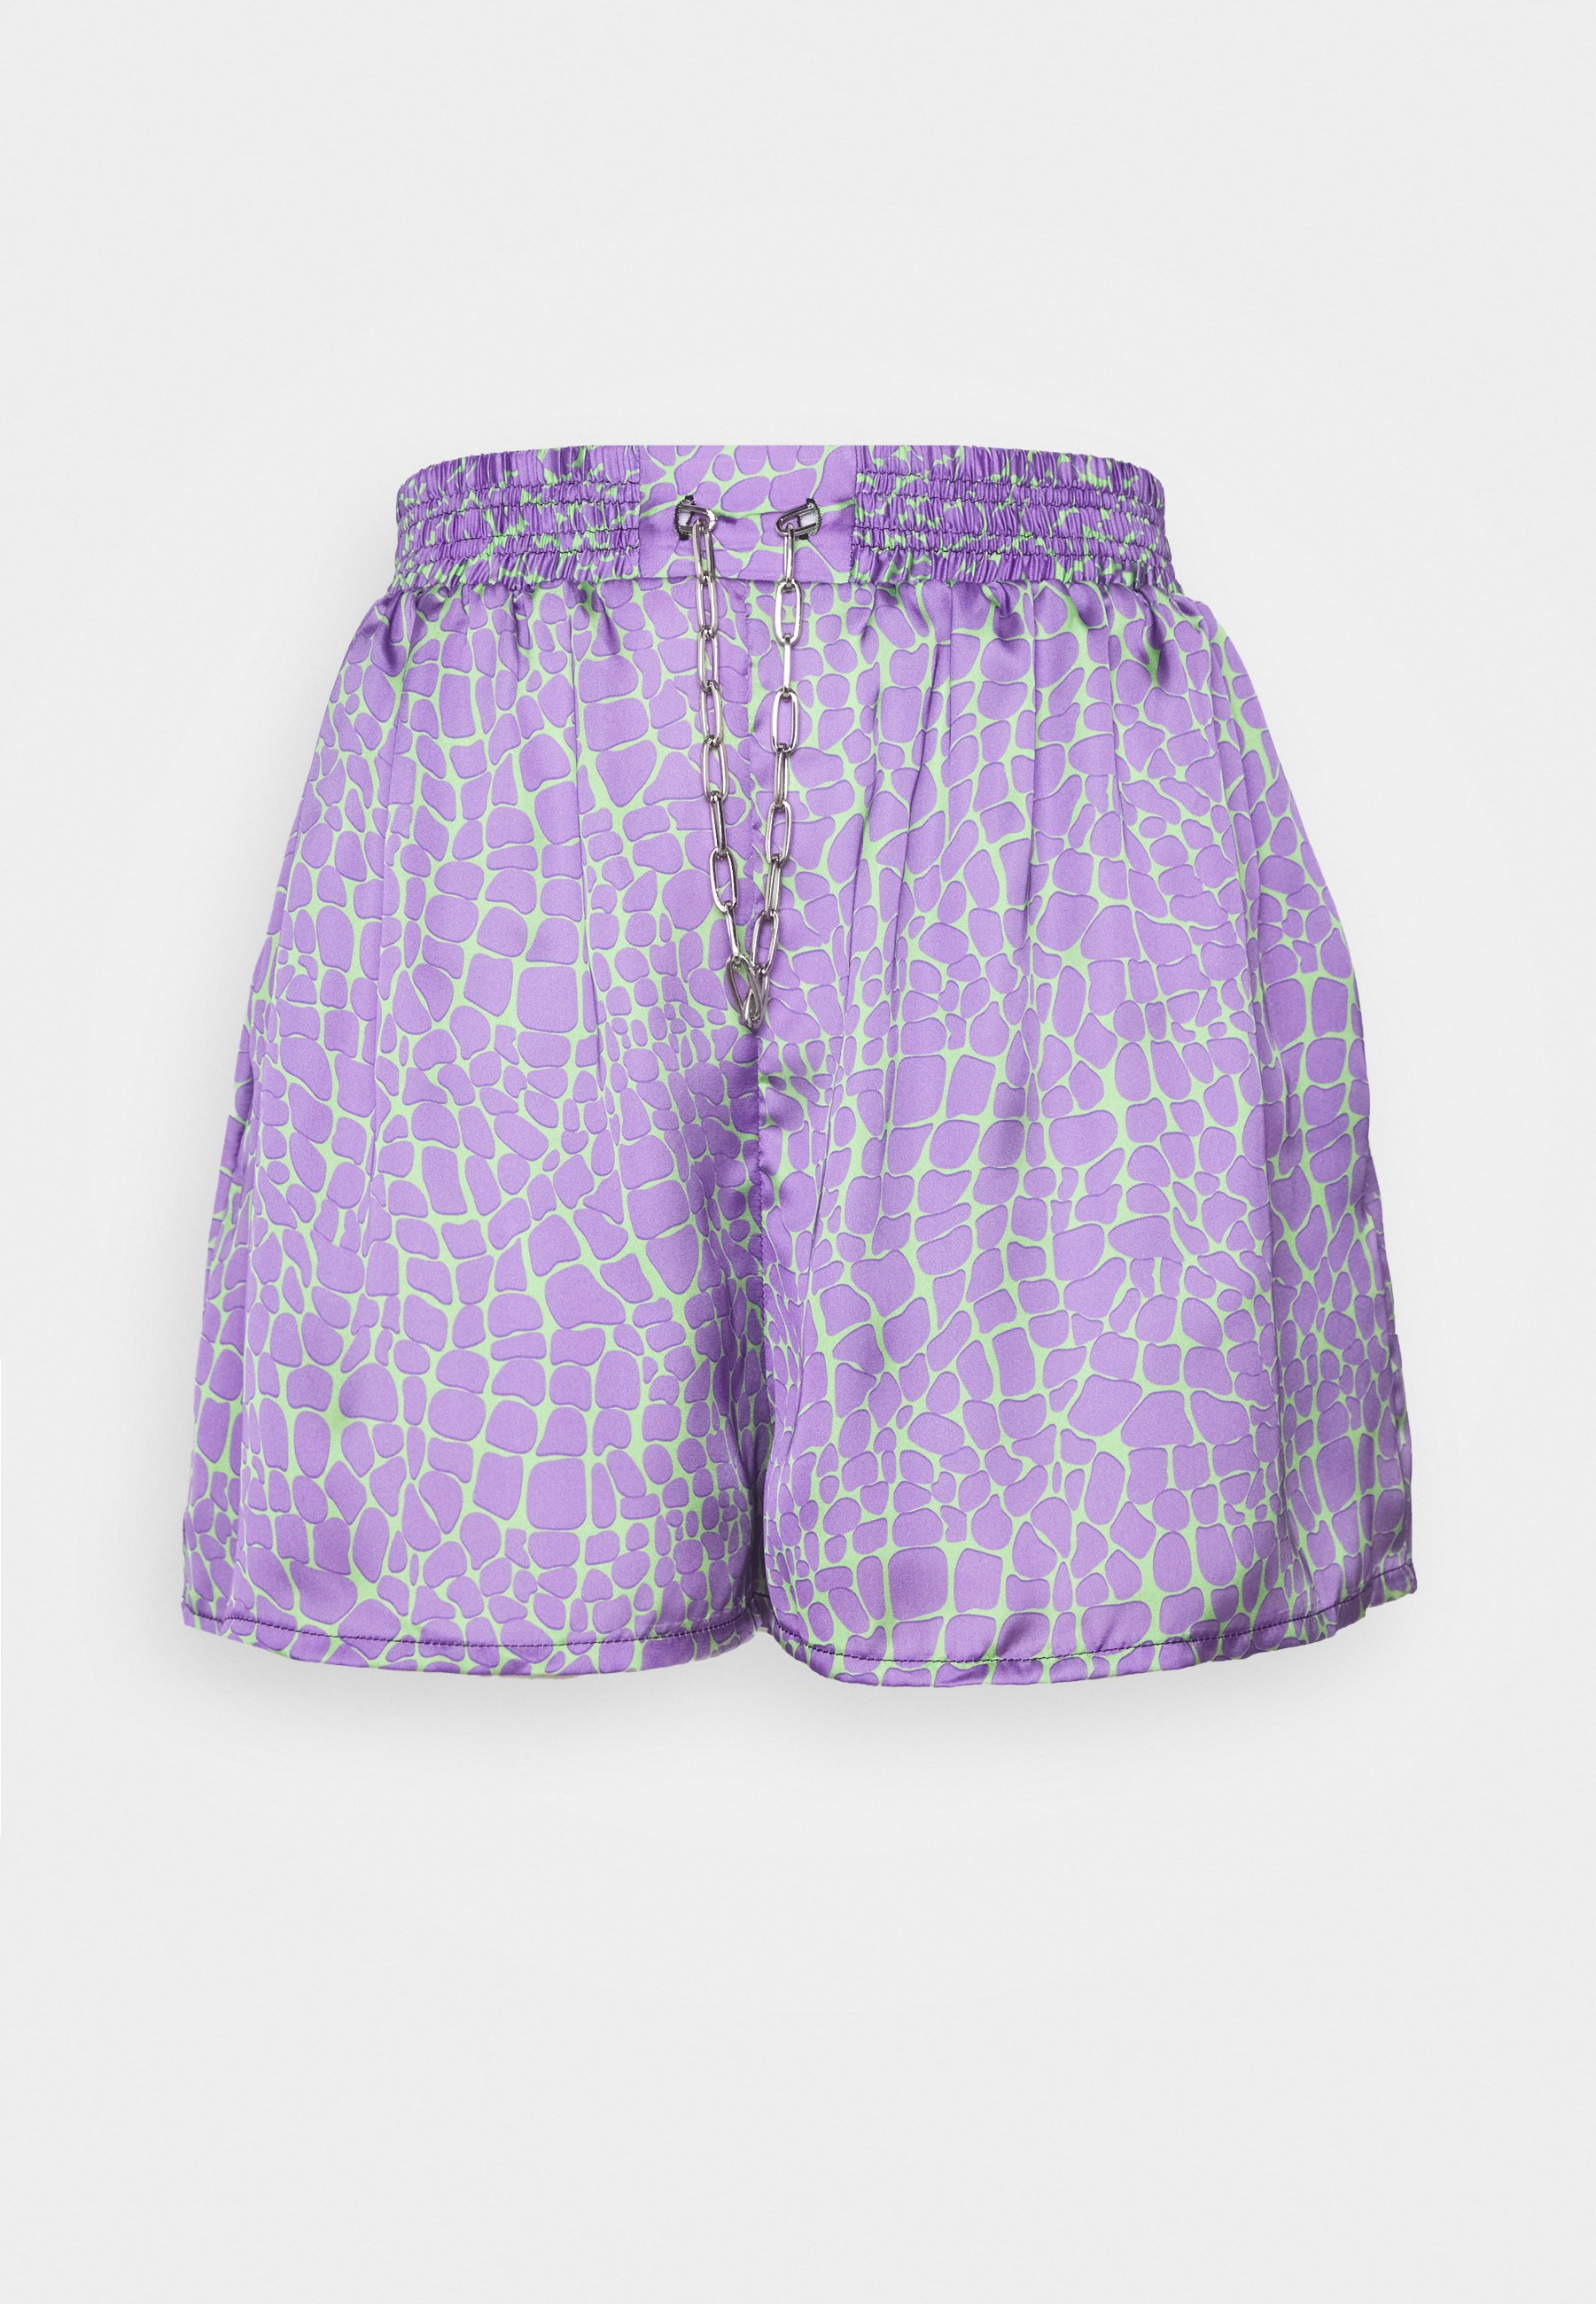 ROOTS Shorts purplelime